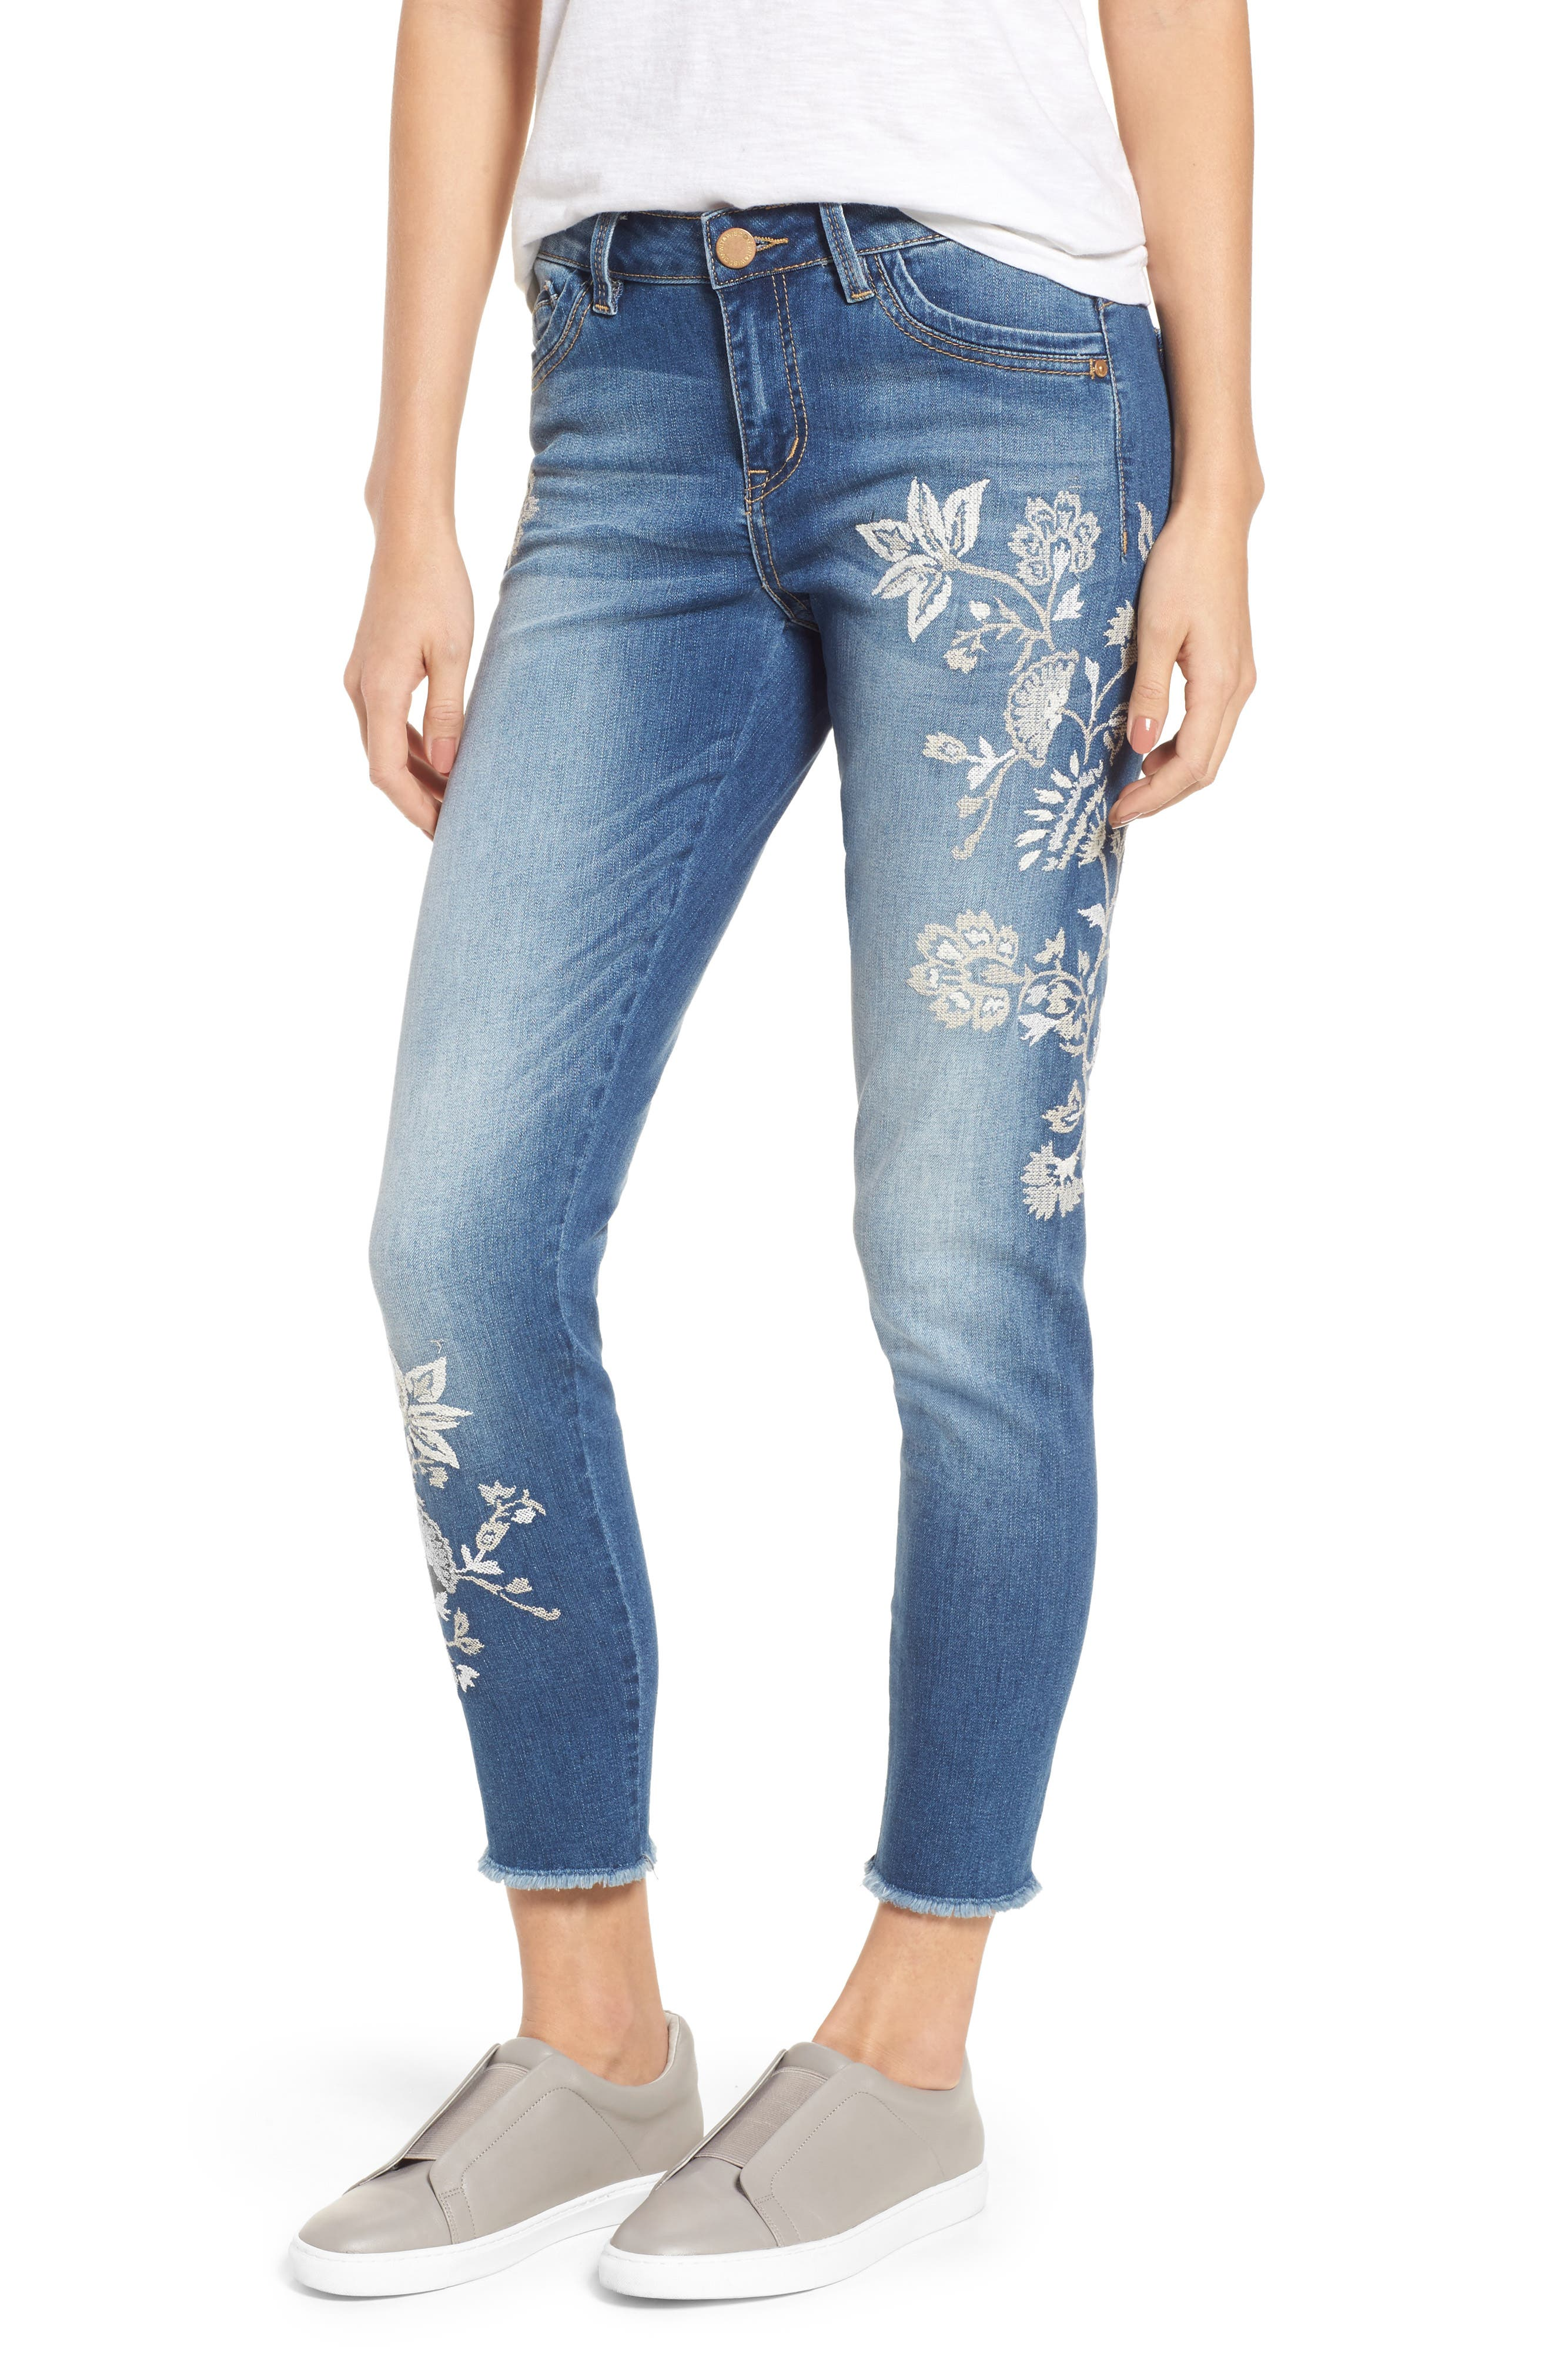 Main Image - Wit & Wisdom Embroidered Frayed Hem Ankle Jeans (Nordstrom Exclusive) (Regular & Petite)